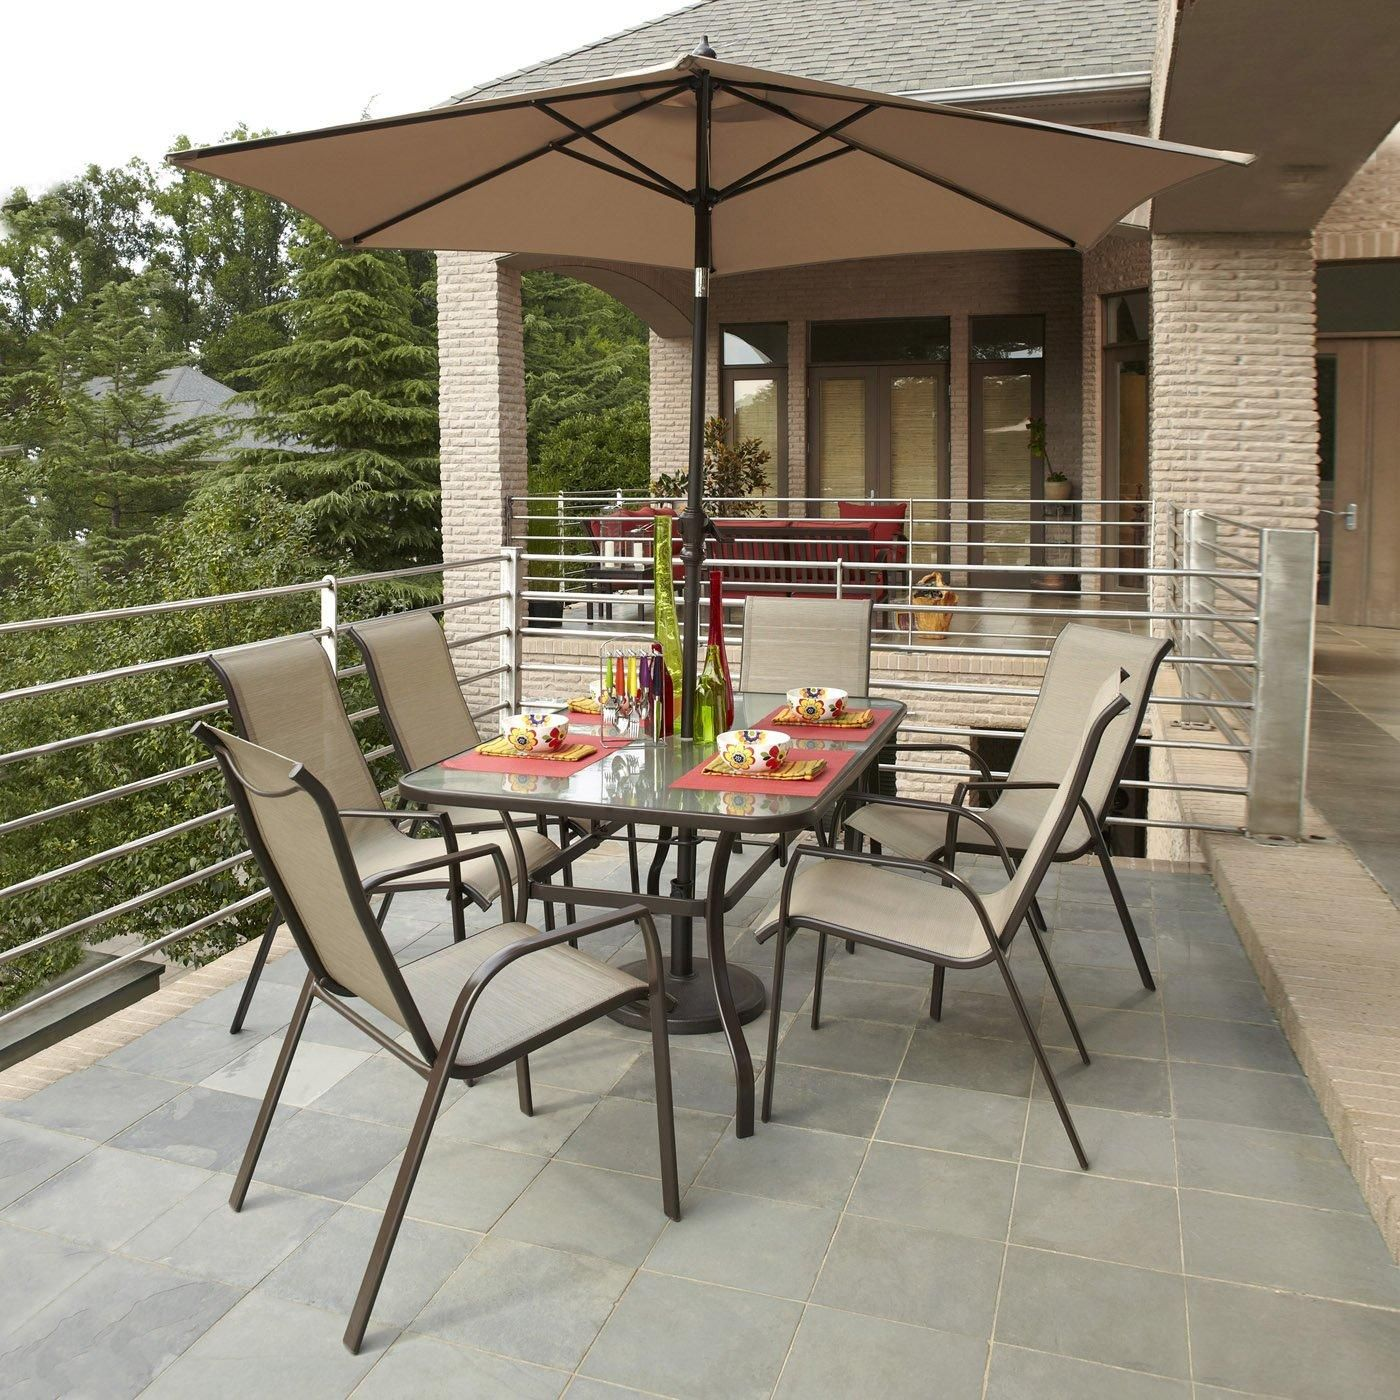 This 7Piece outdoor dining set has a tempered glass table